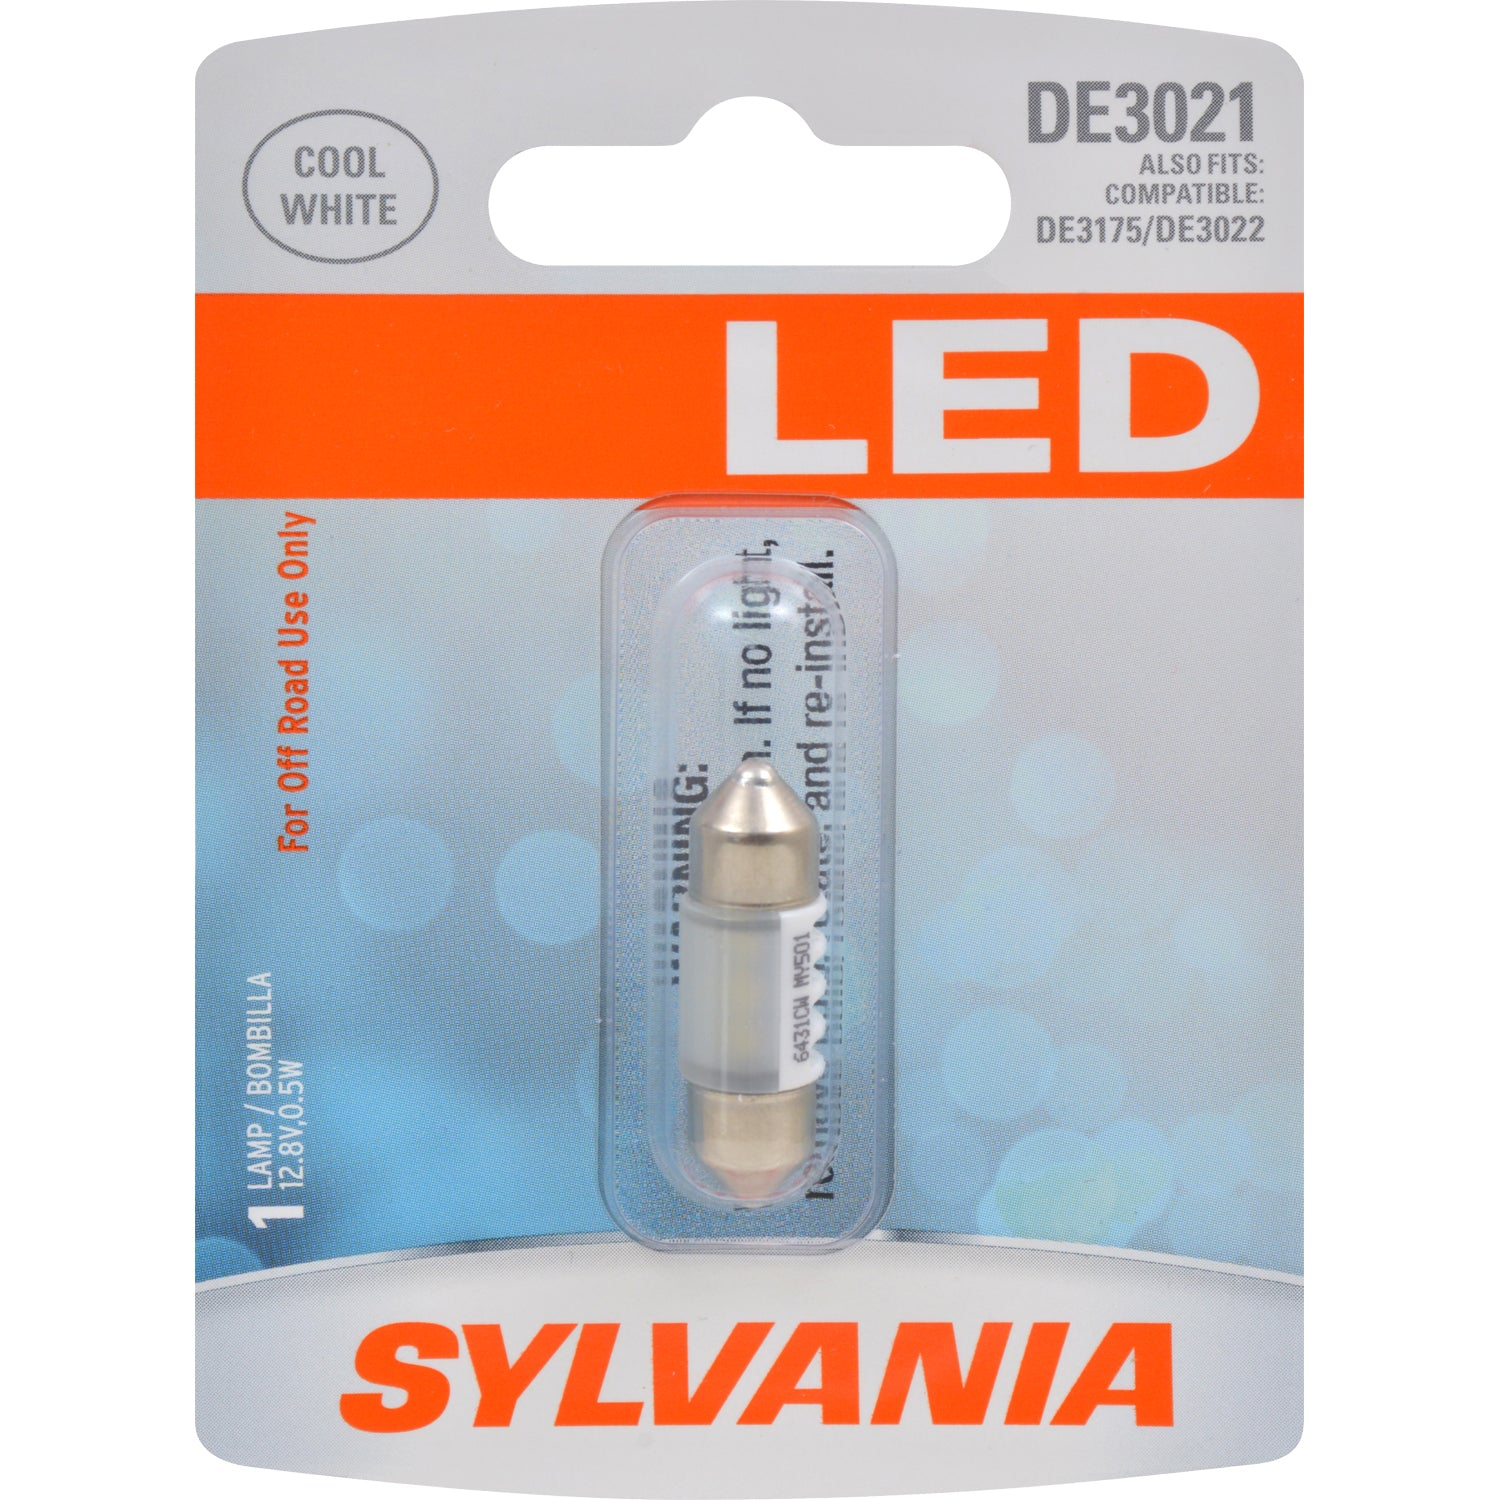 SYLVANIA DE3021 31mm Festoon Cool White LED Automotive Bulb - Fits DE3175 DE3022